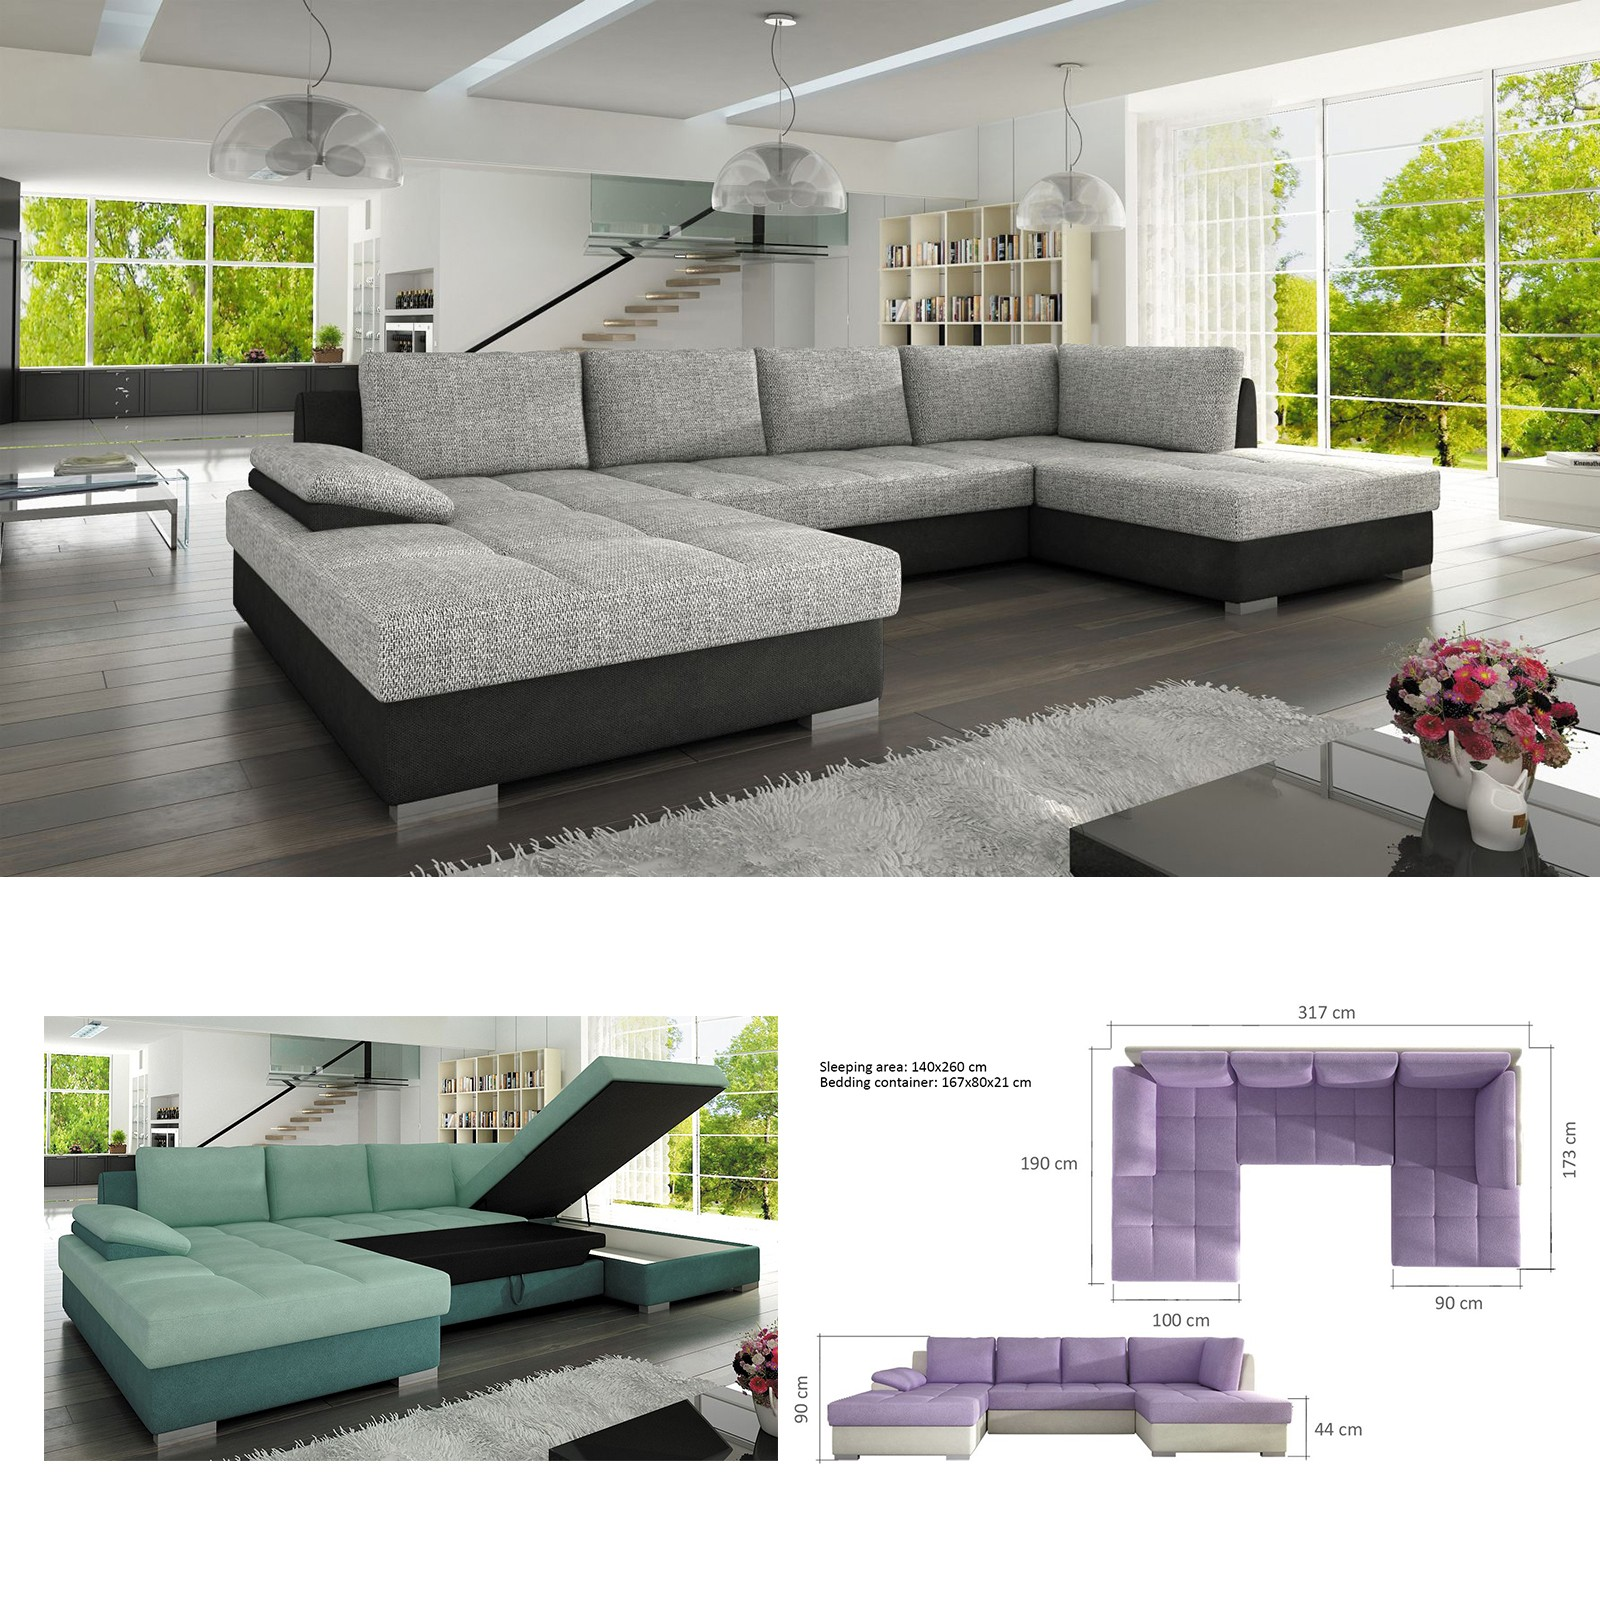 Details about BMF \'NELLY MAXI\' MODERN Corner Sofa Bed Storage Faux  Leather/Fabric RF